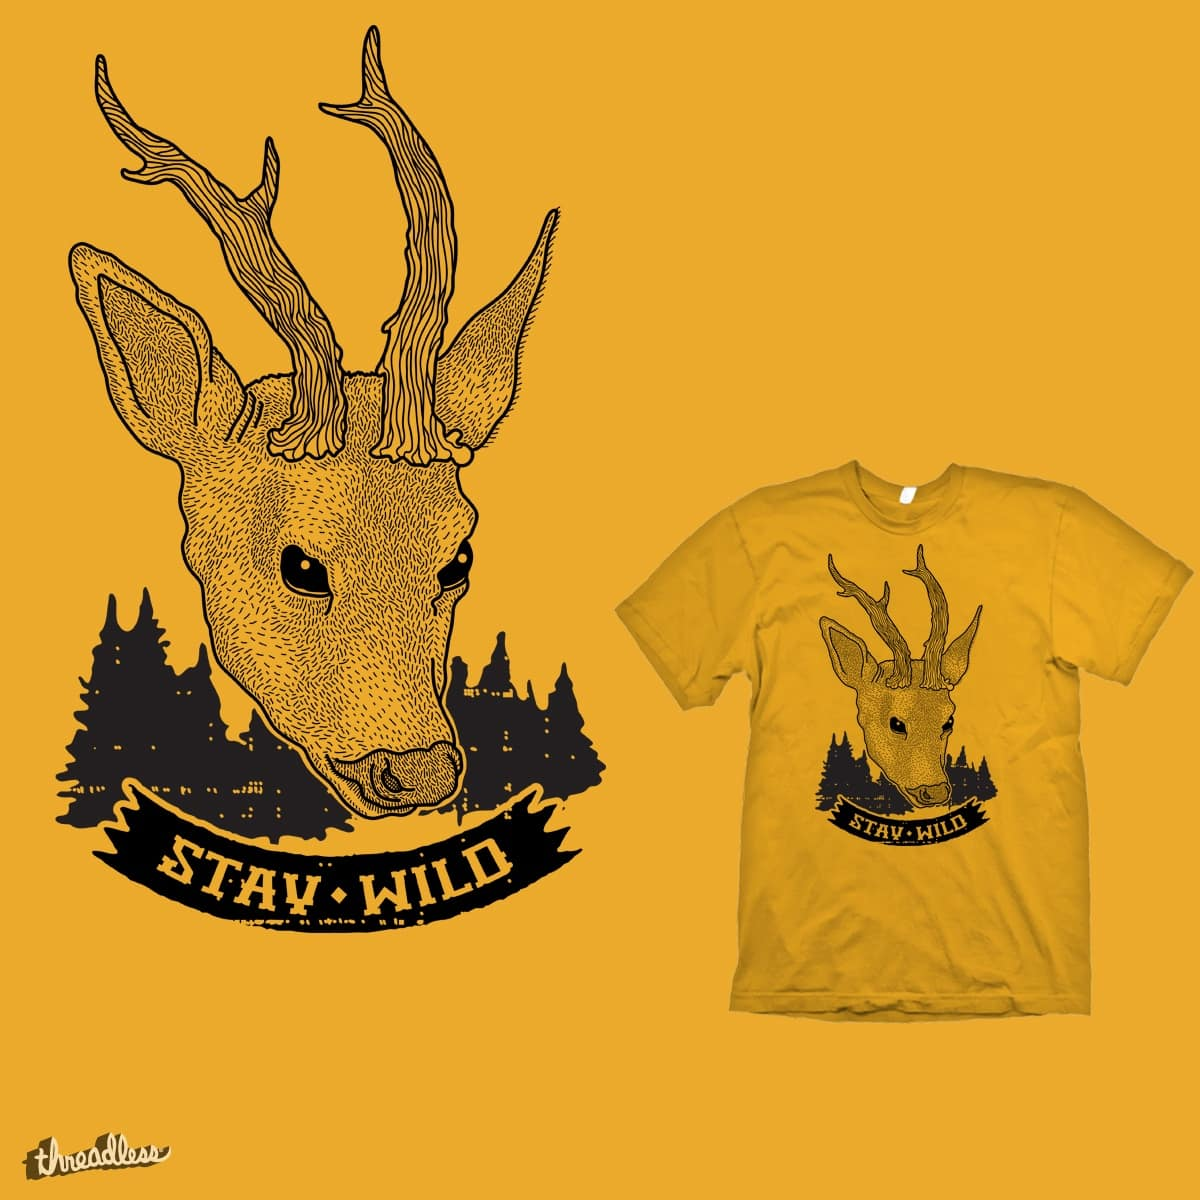 Stay Wild by parallelish on Threadless